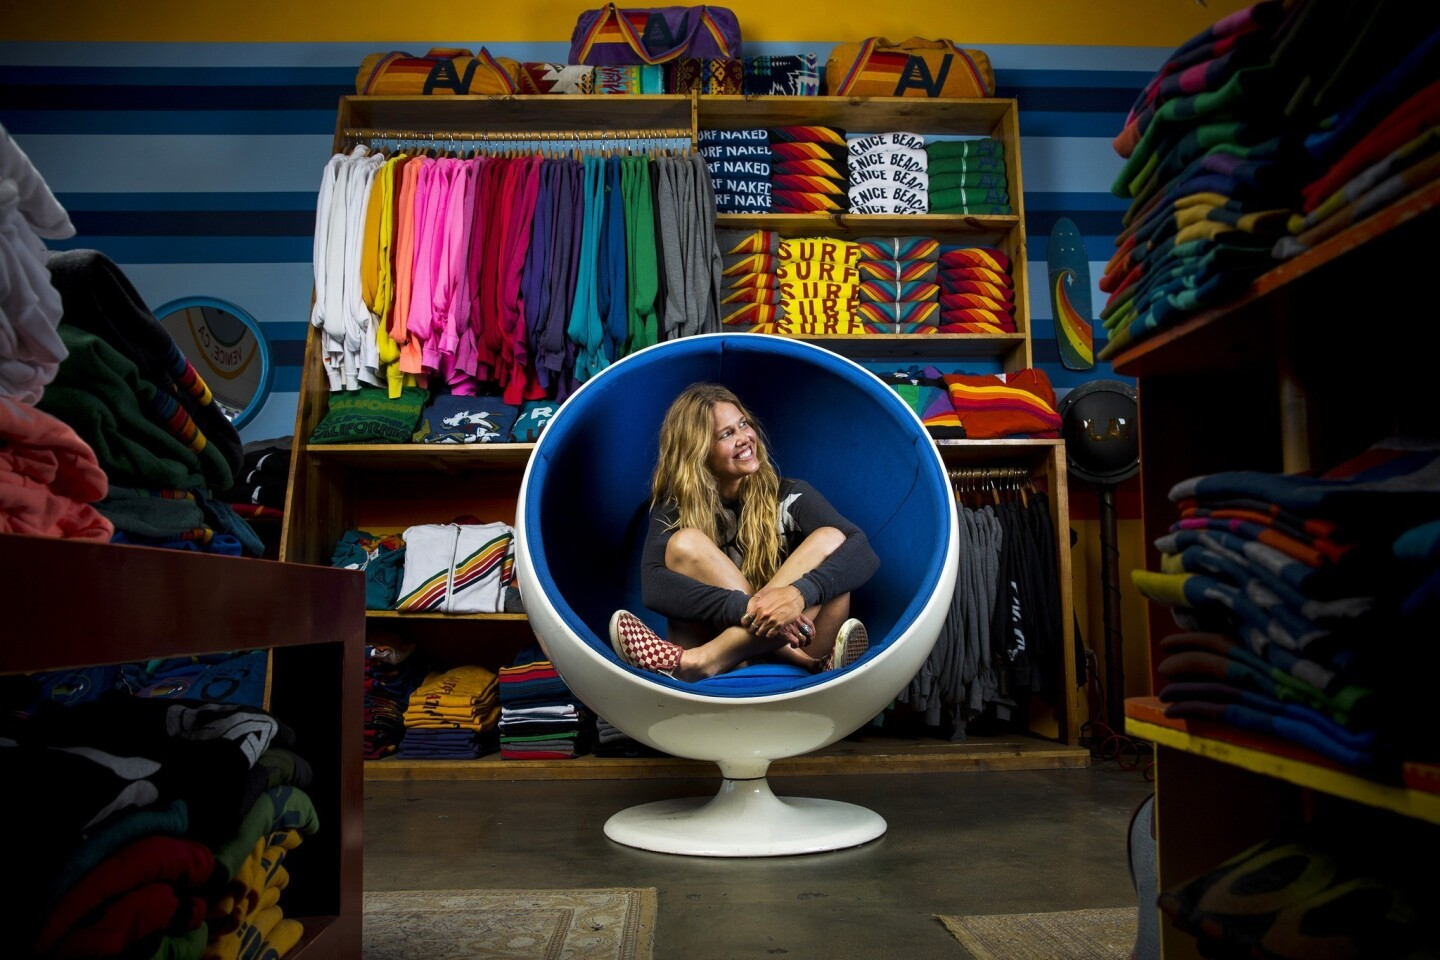 Paige Mycoskie, designer and founder of Venice-based Aviator Nation clothing line, is photographed inside her flagship store on Abbott Kinney in Venice.